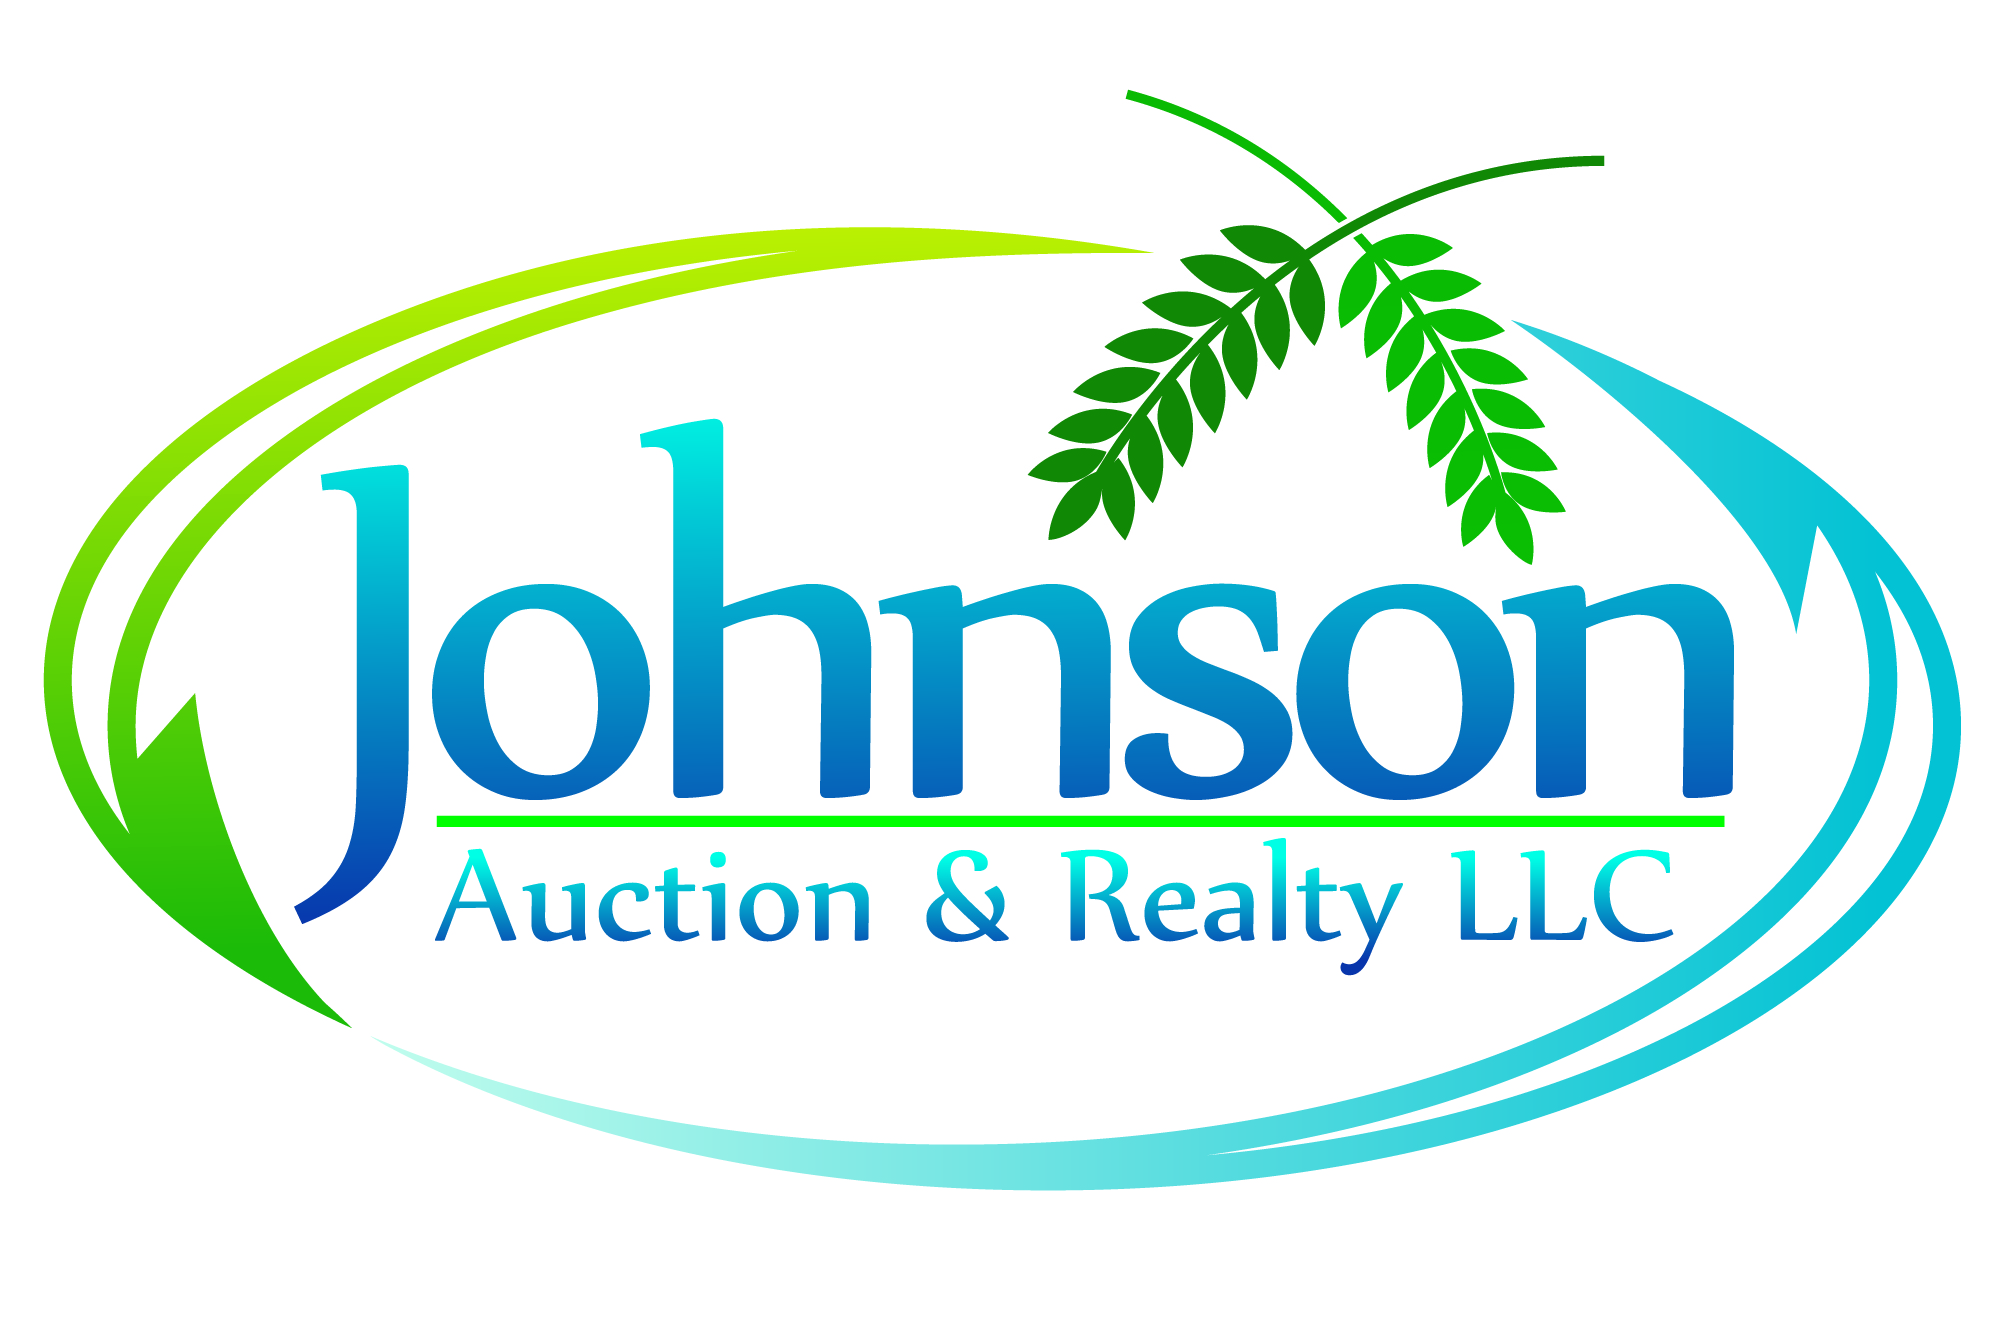 Johnson Auction and Realty LLC